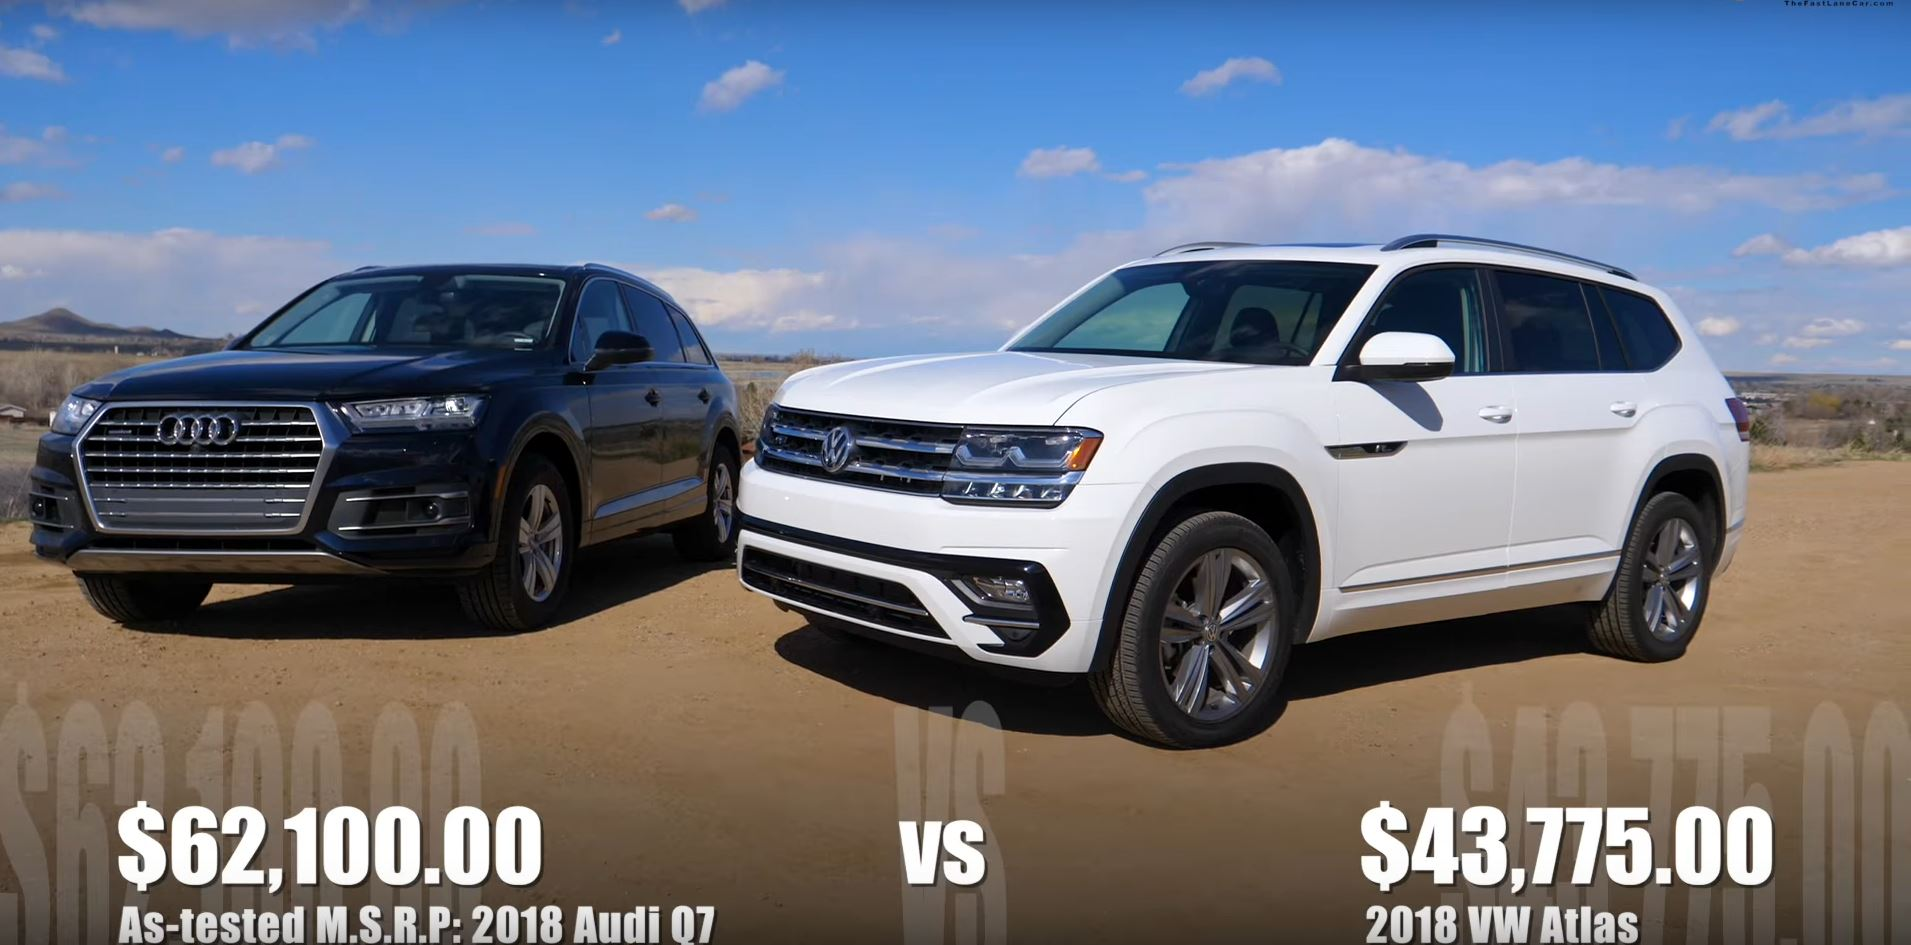 Is The Volkswagen Atlas An Audi Q For Less Autoevolution - Is audi made by vw